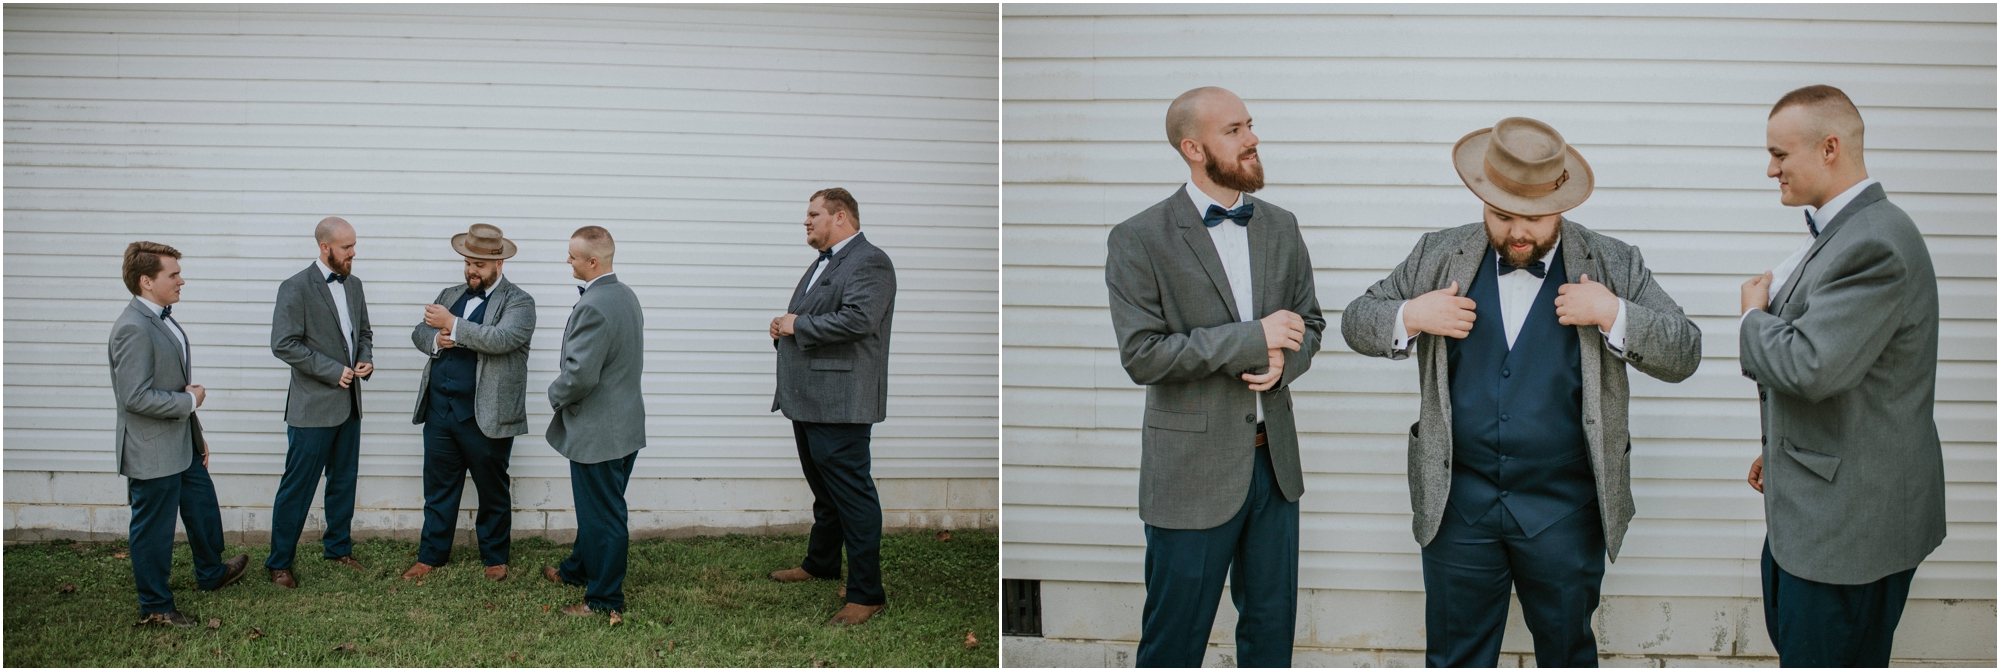 caryville-robbins-middle-tennessee-intimate-cozy-fall-navy-rustic-backyard-wedding_0028.jpg